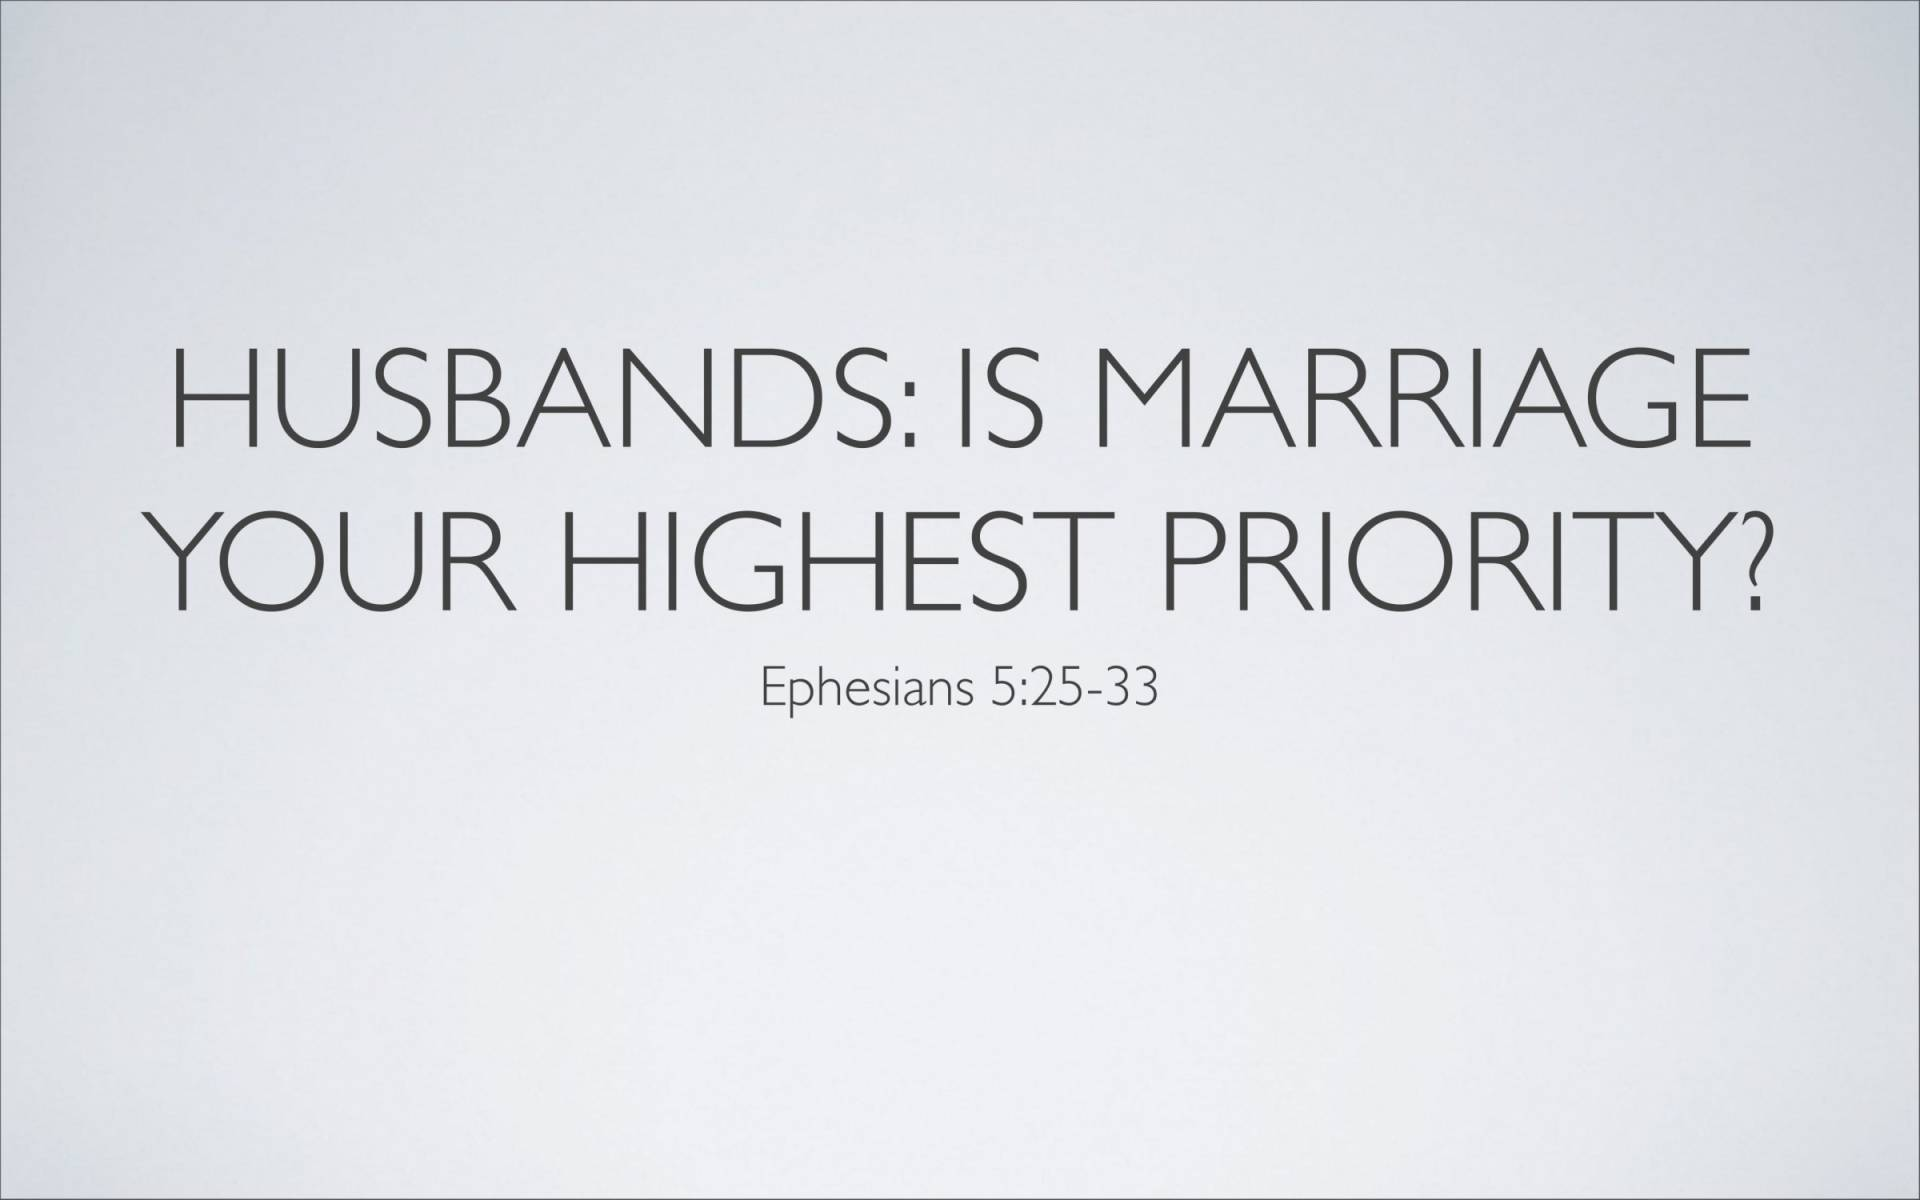 BC&D-36 - Lesson 14 - The Marriage Relationship-06